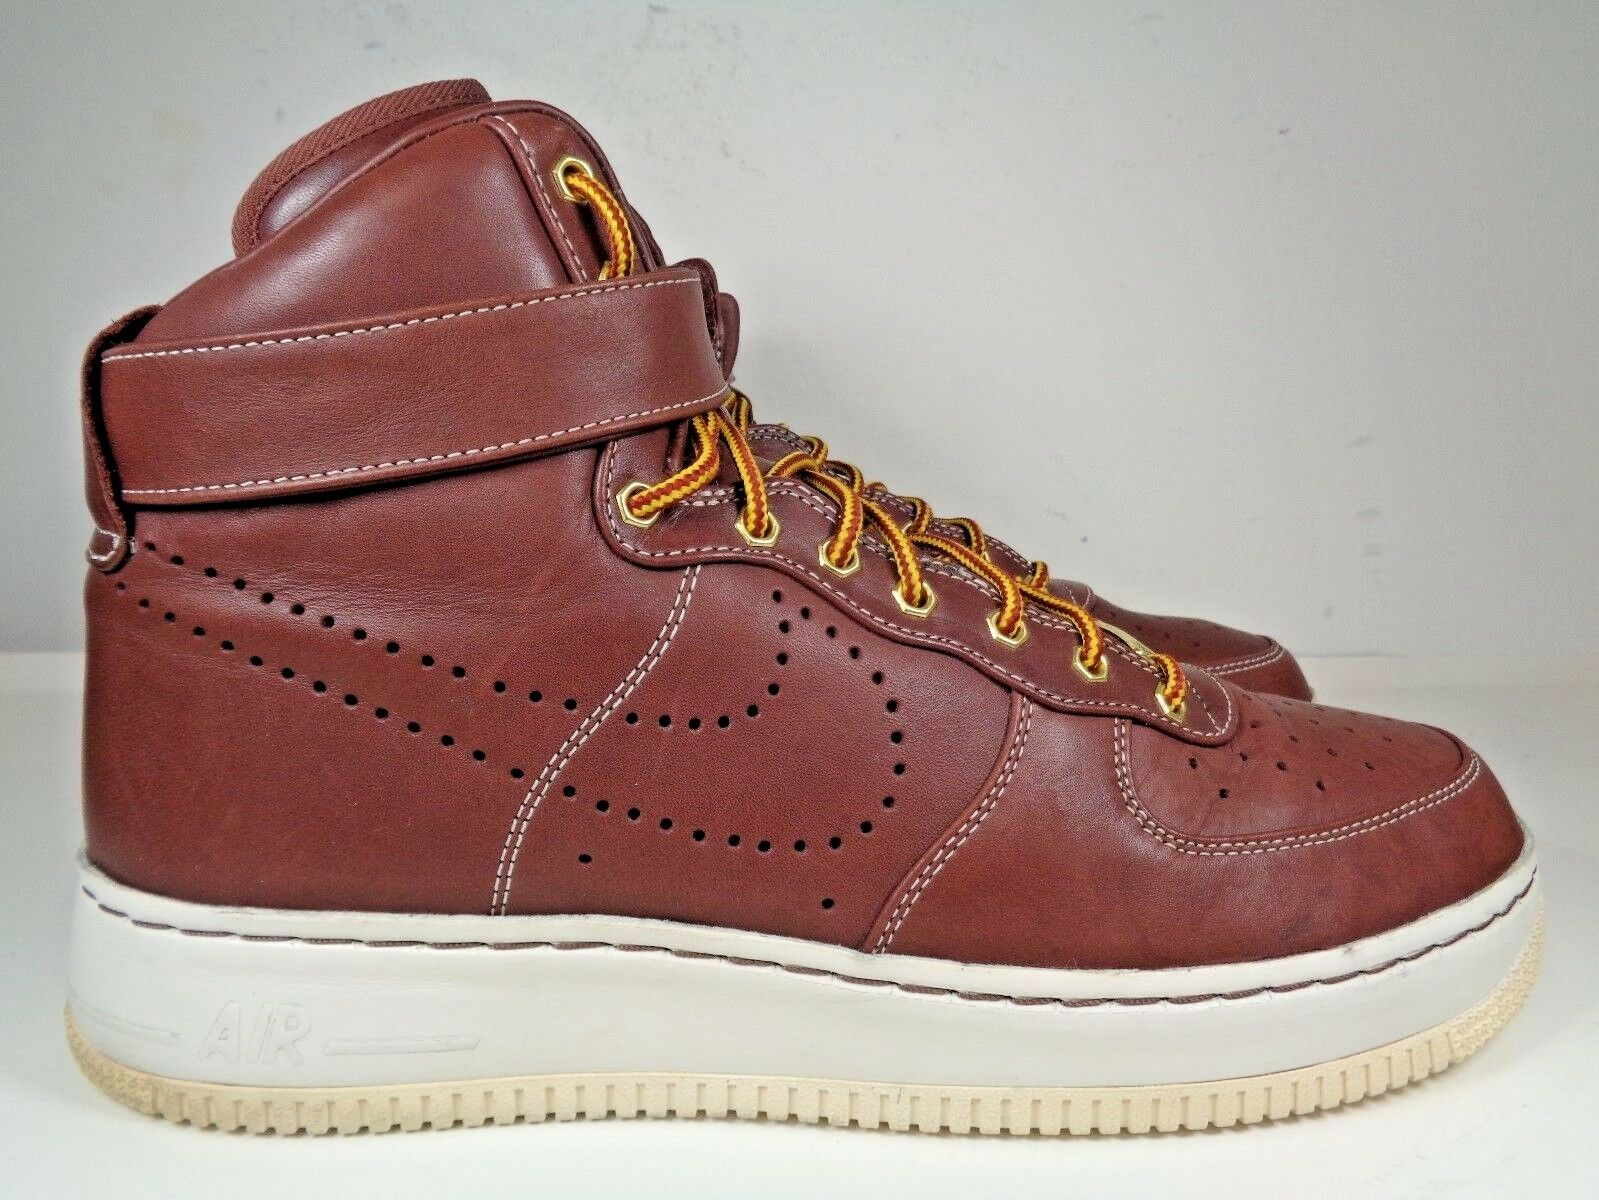 Mens Air Nike Air Mens Force I Supreme High Special Field Boots size 10.5 US 400895-600 8f9c20